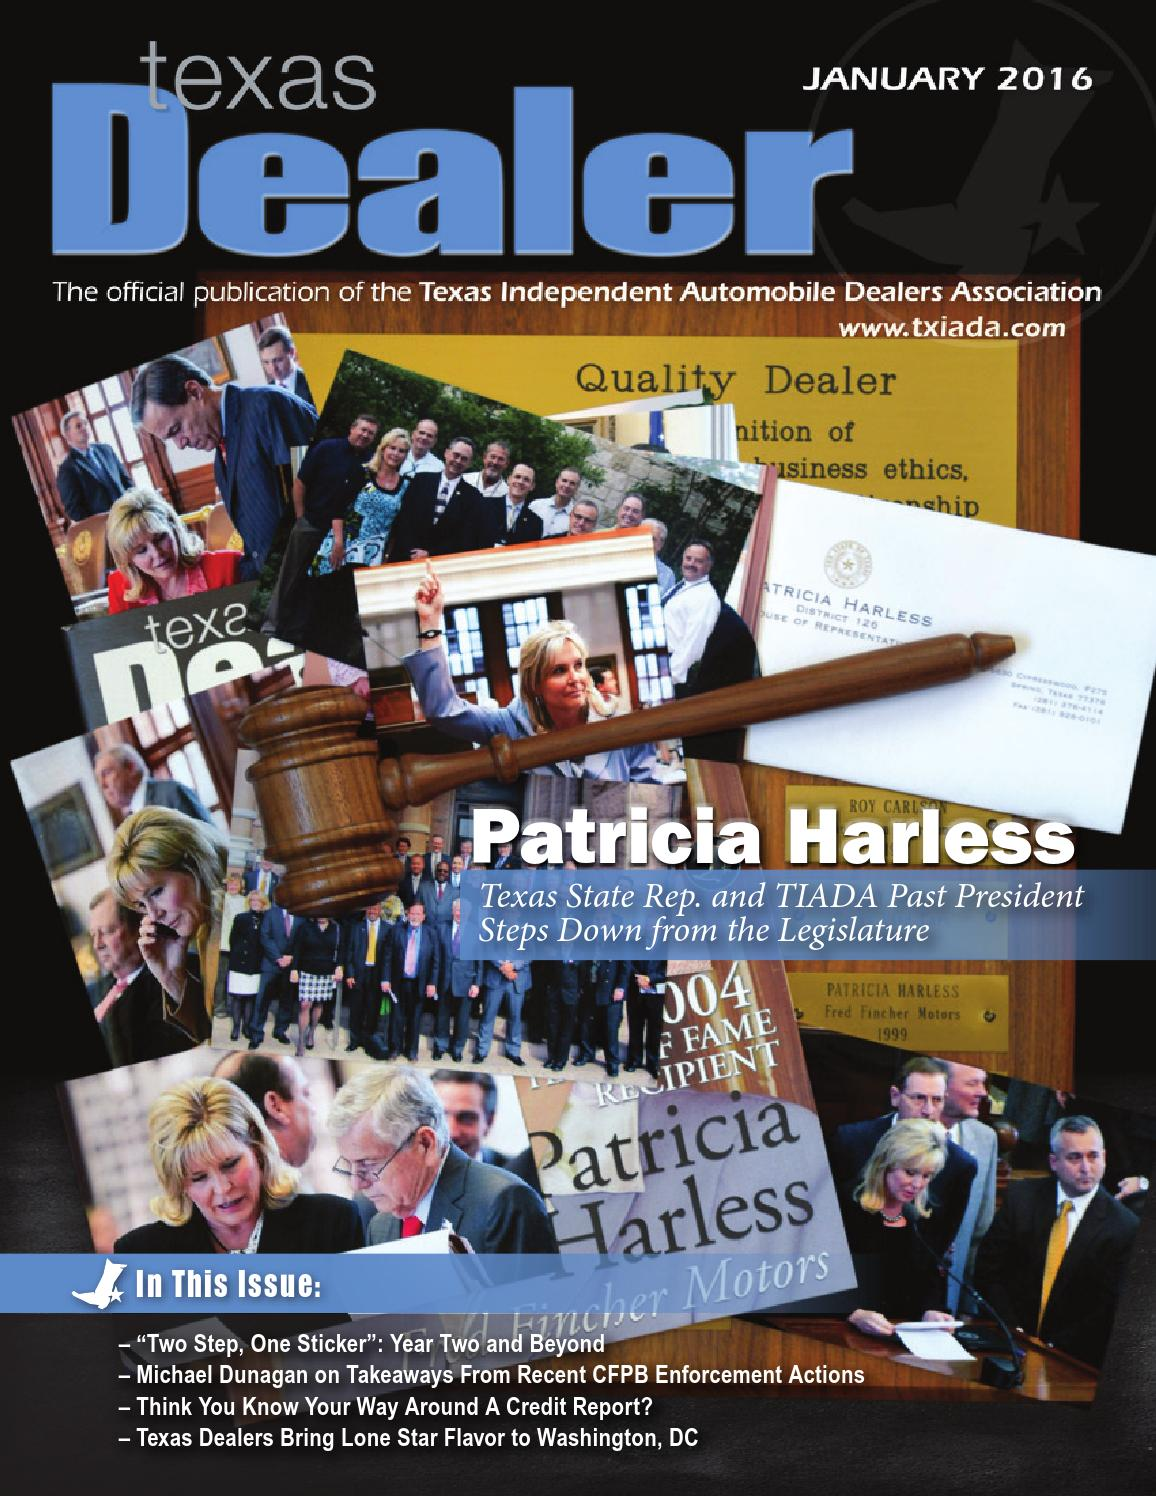 Texas Dealer January 2016 By Texas Independent Auto